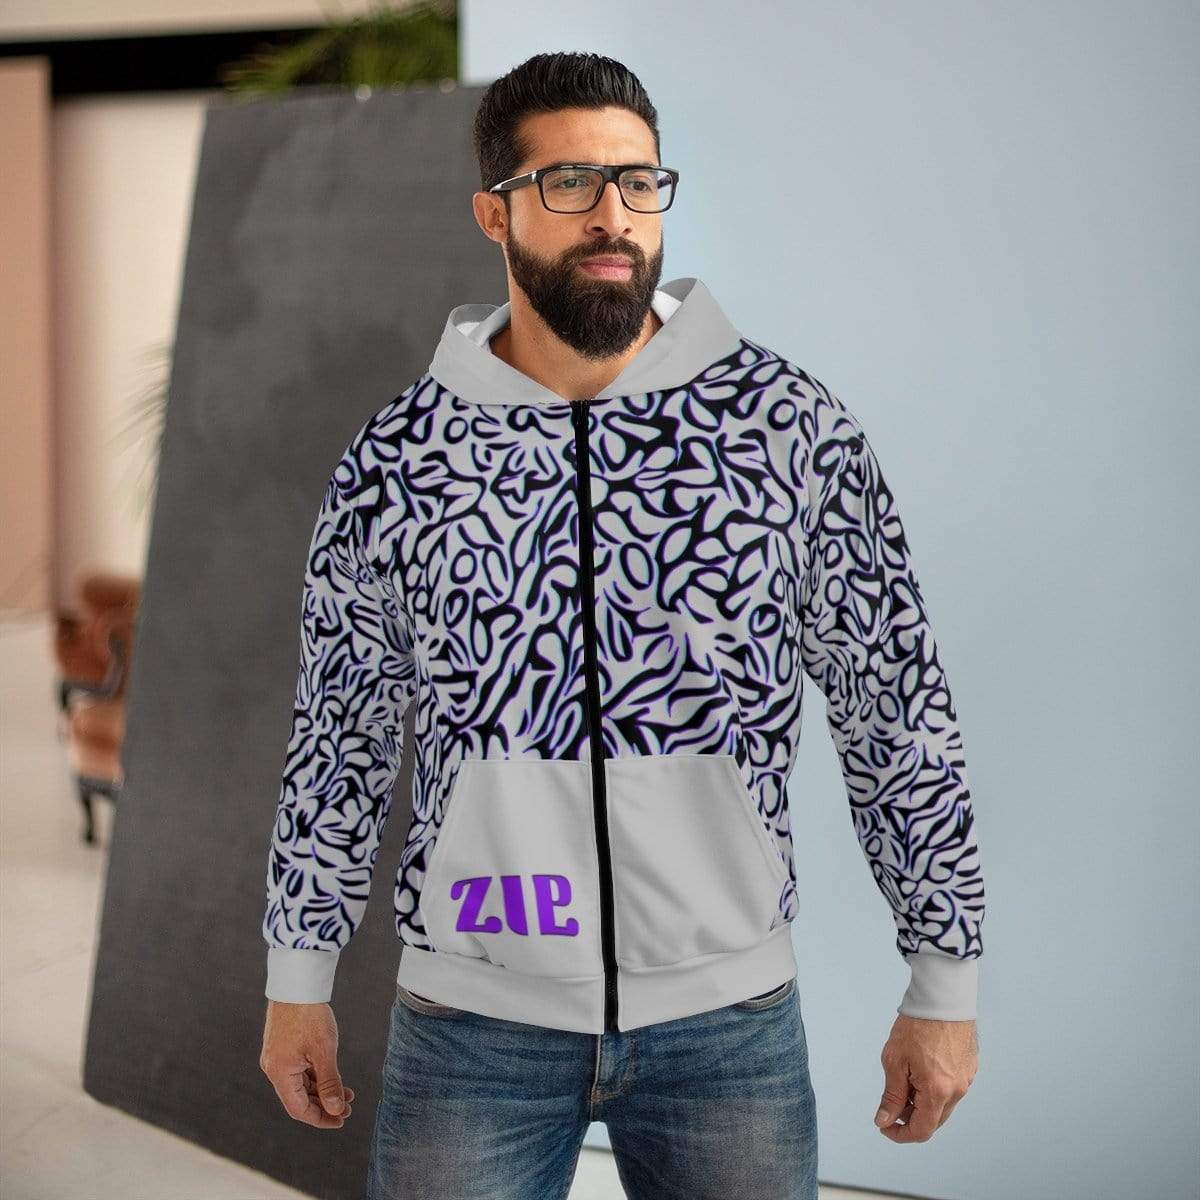 Printify All Over Prints Plumskum Cut Sew AOP Zip Hoodie - Glitch Aesthetic 303